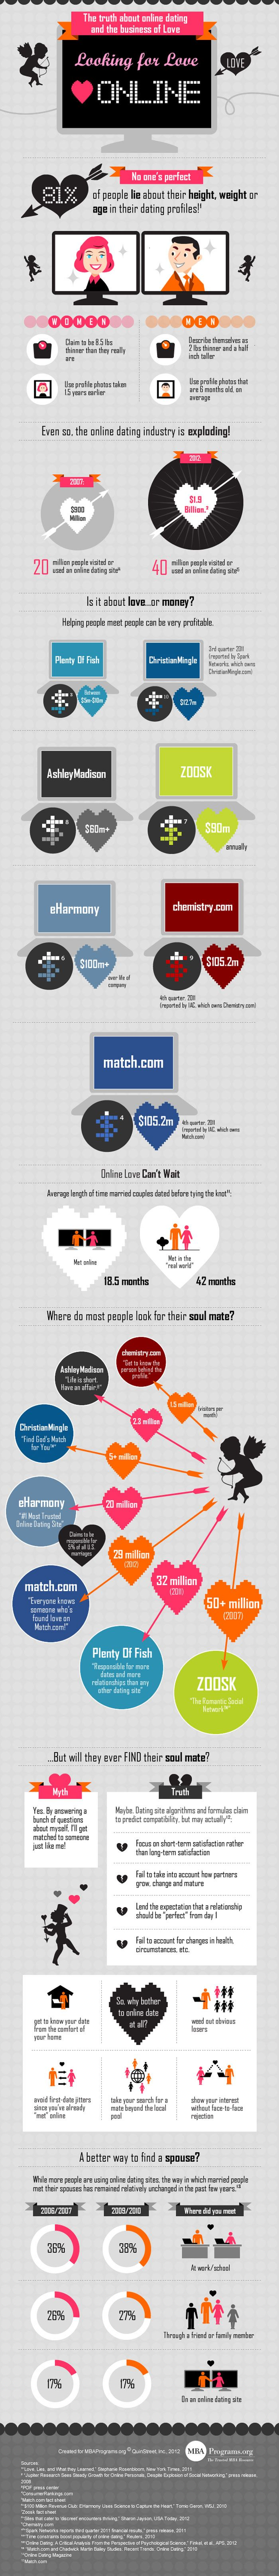 Online Dating Statistics 2012 [Infographic]  http://wefirstmet.com